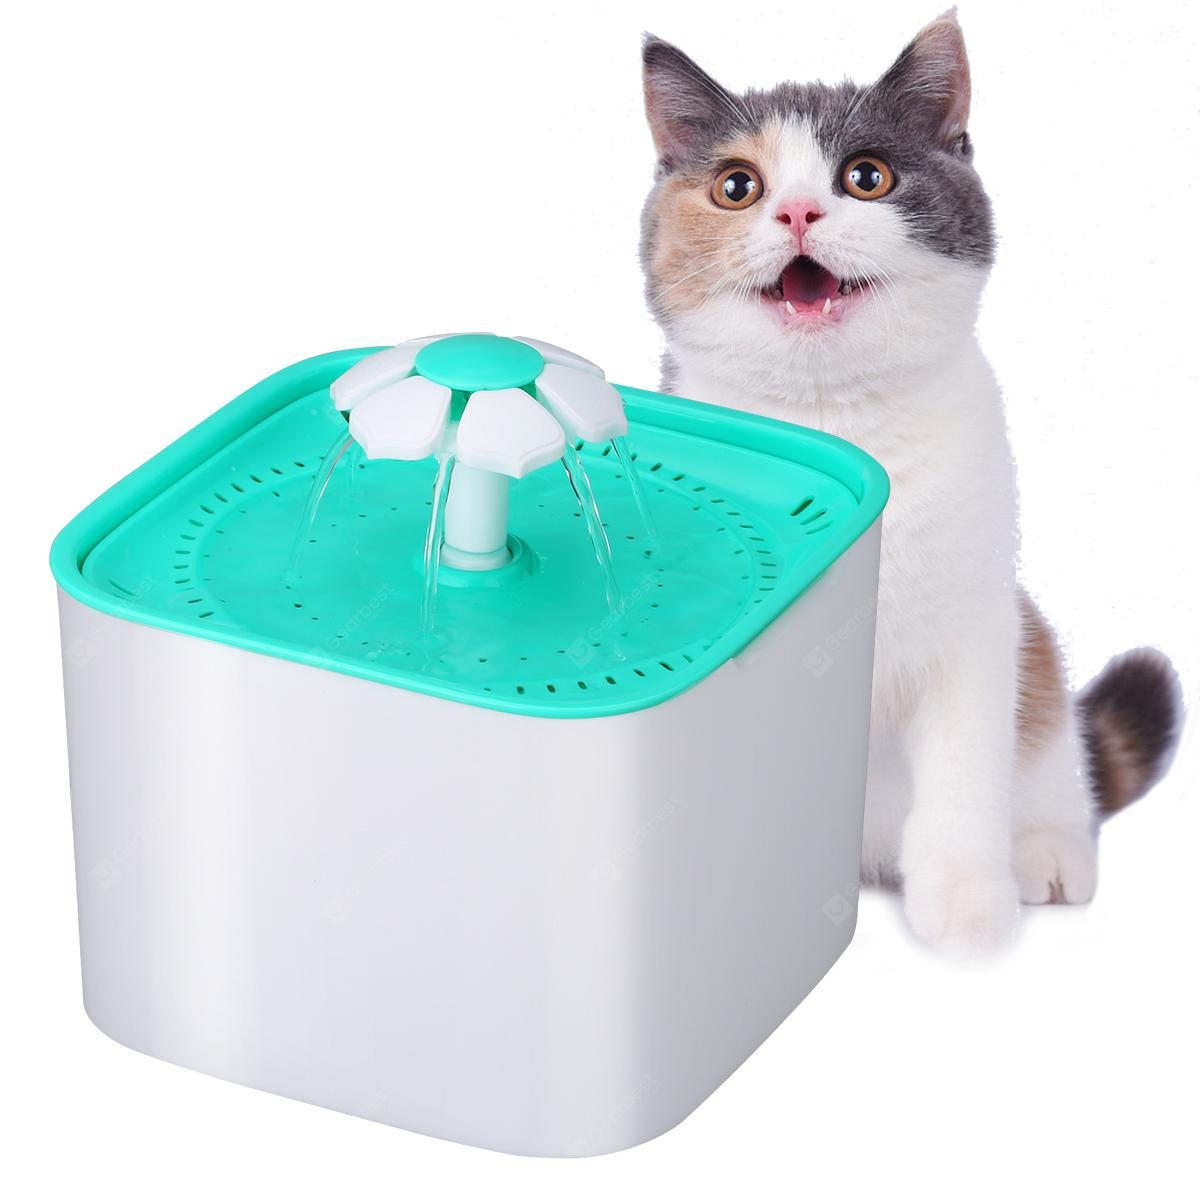 automatic pet drinking fountain - ALGAE GREEN